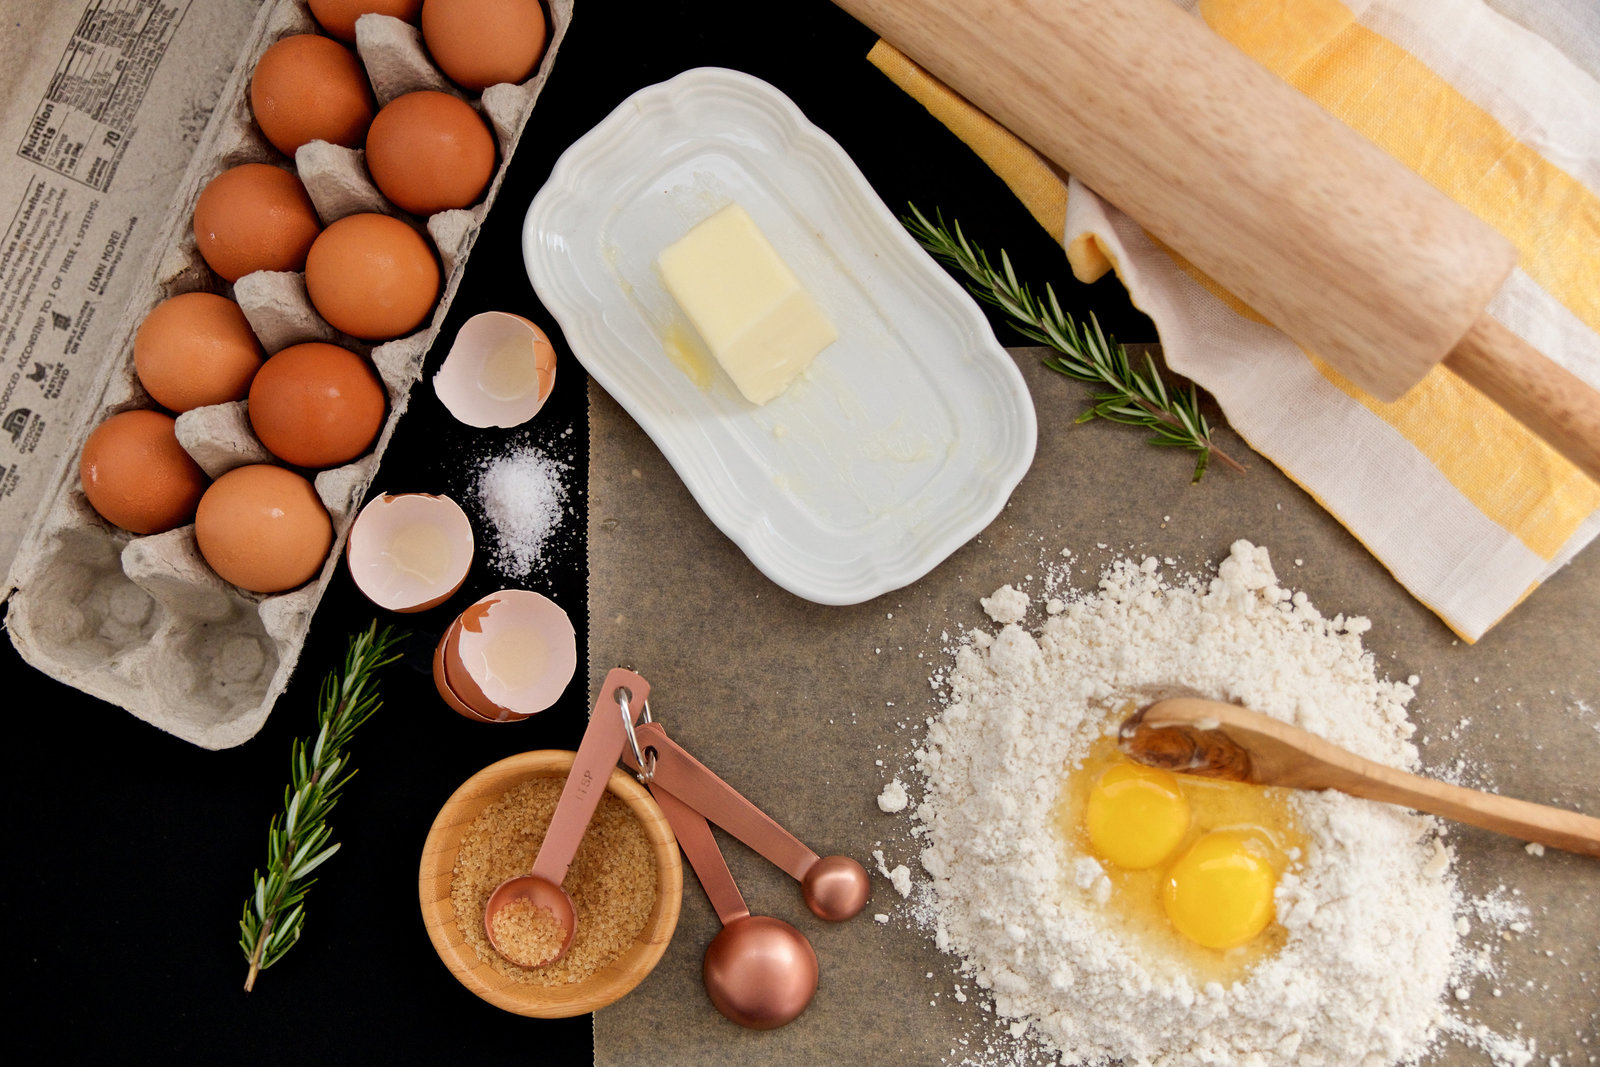 food business branding cooking photographer baking styling with eggs and flour